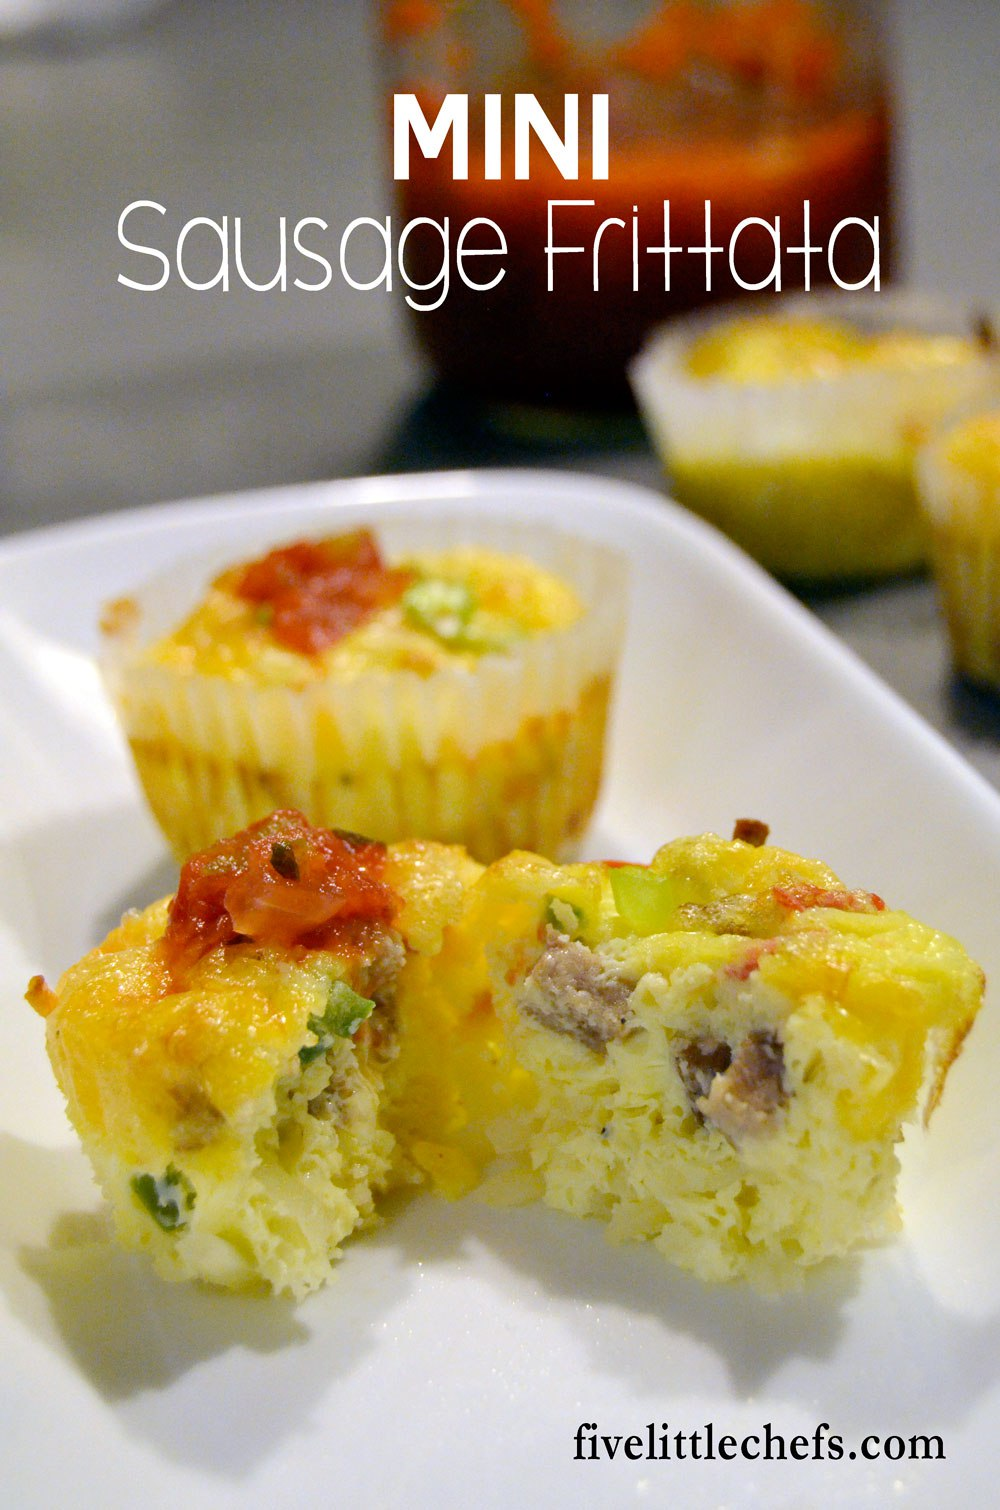 Mini sausage frittata with cheese, hash browns and eggs is one of my favorite breakfast recipes. It would also be great for brunch or the occasional breakfast for dinners.